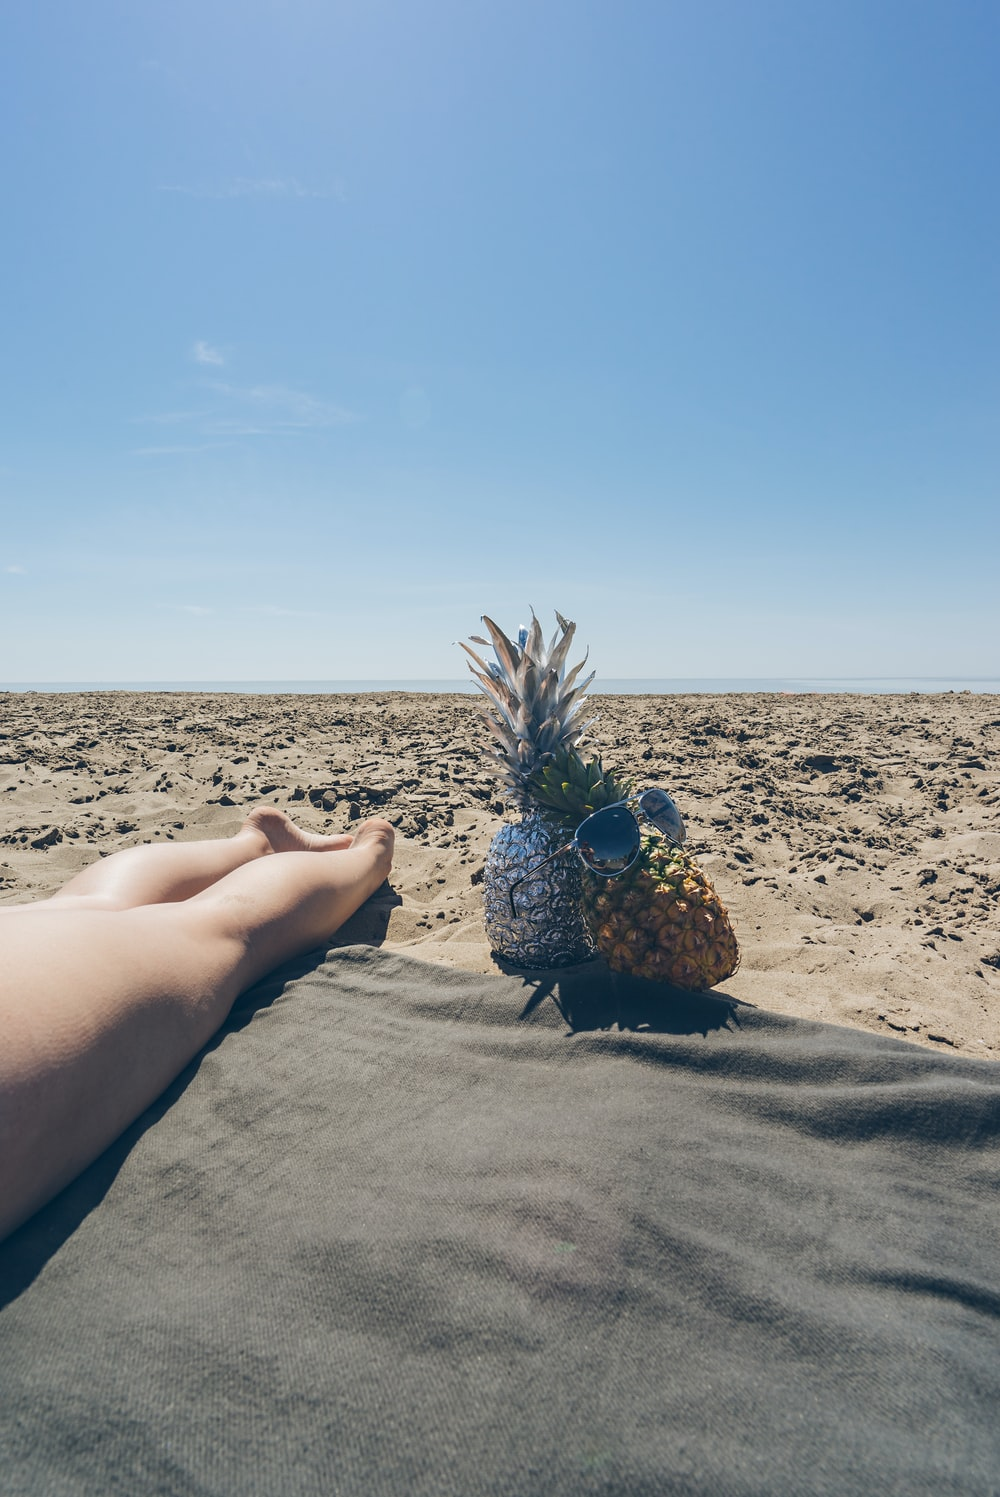 two pineapple near barefooted person on brown field